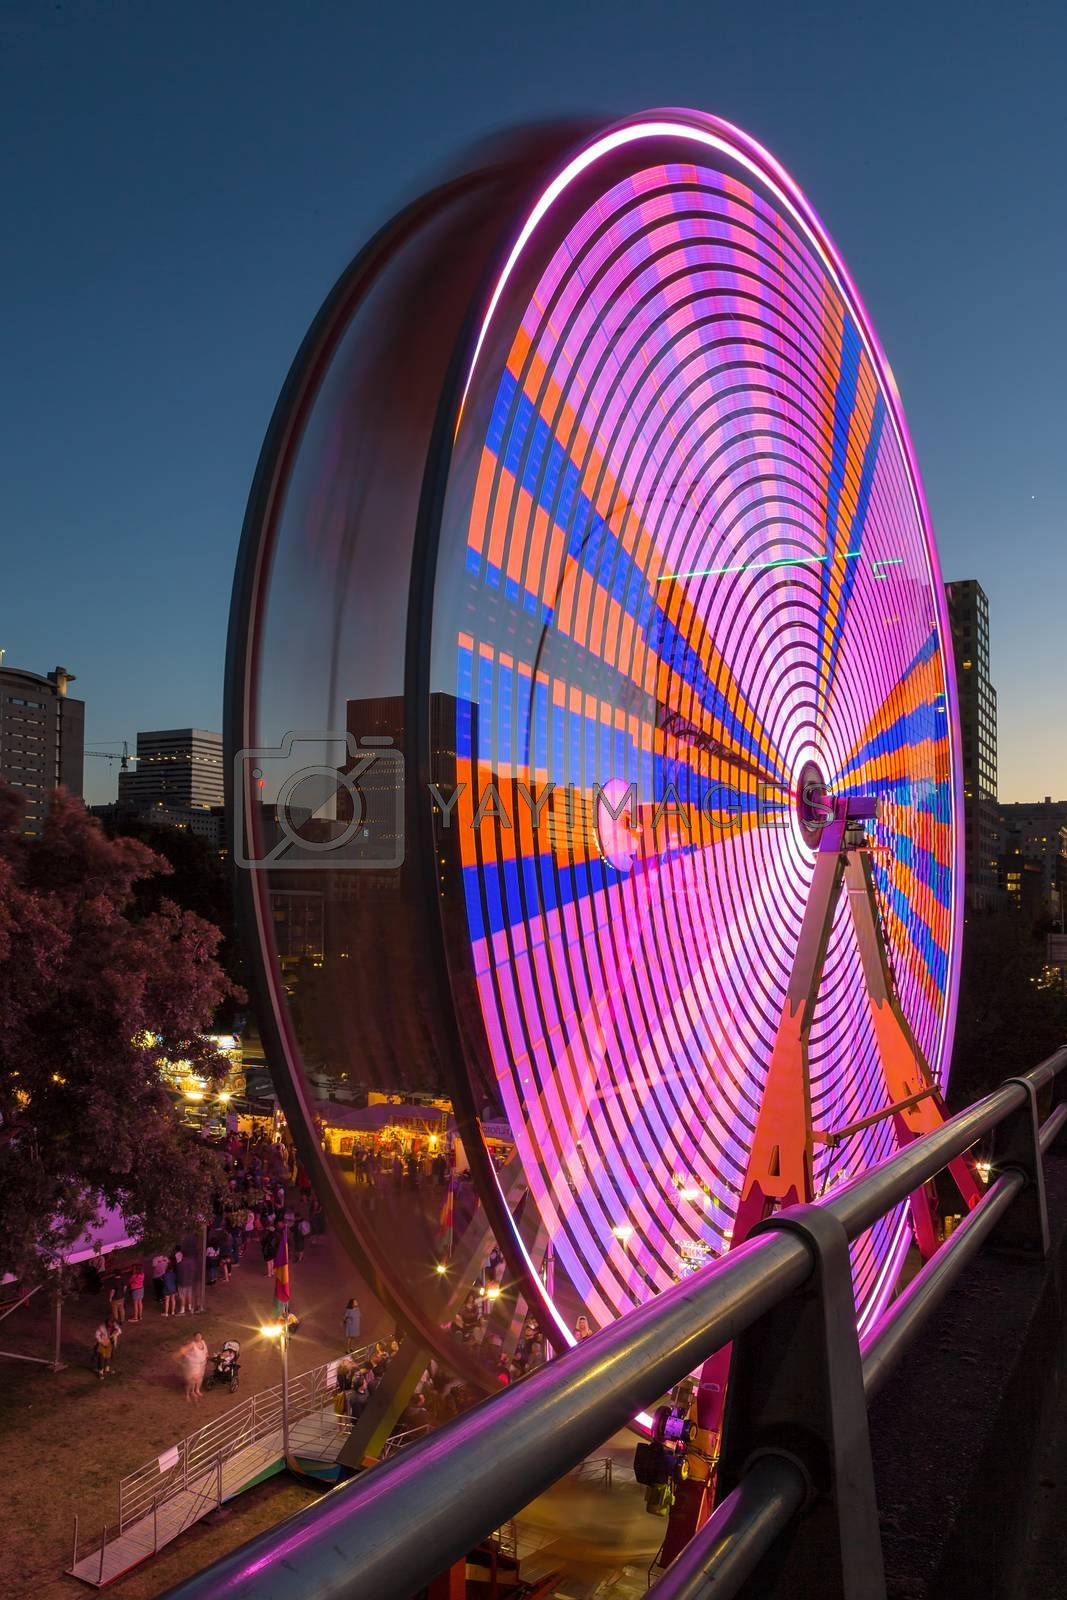 Ferris Wheel at night during Portland Rose Festival in downtown waterfront colorful lights long exposure